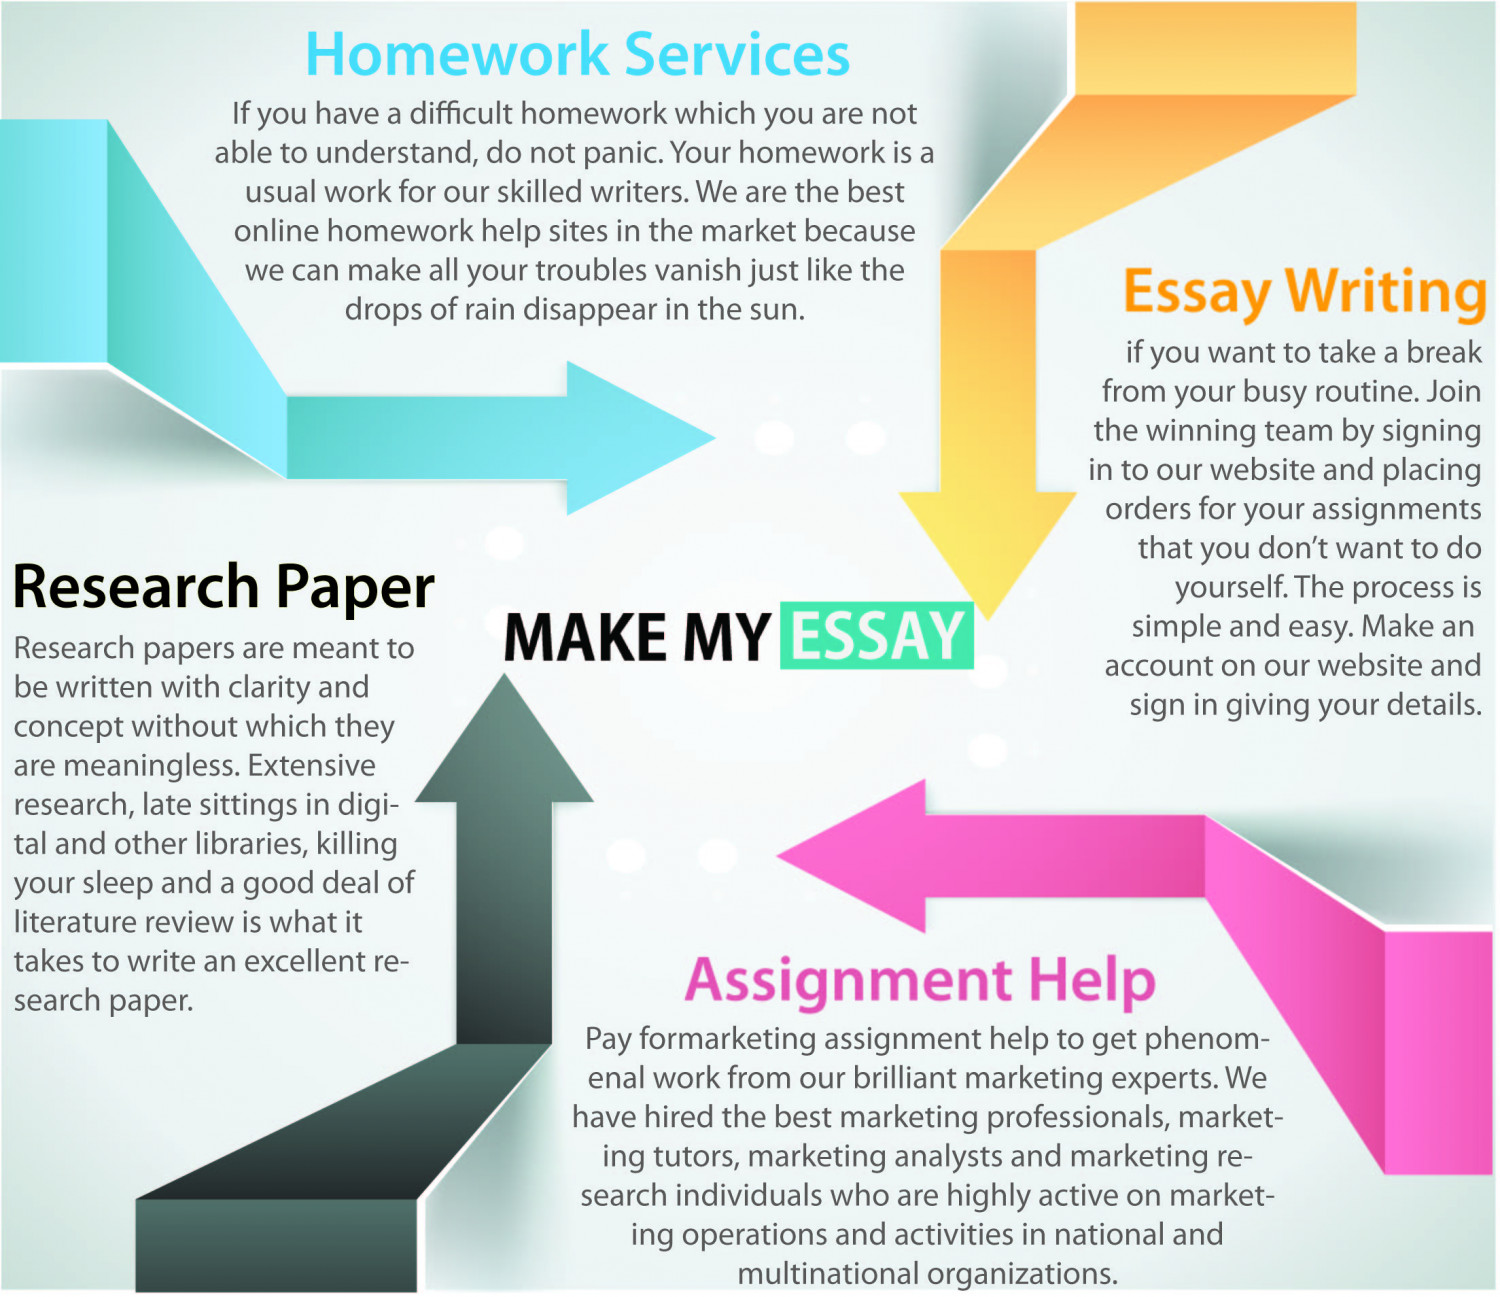 cheapest essay Essayzoo: cheap pre written essays for sale as well as custom essay writing services search through over 50 000 unique apa, mla style essay samples 100% confidentiality guarantee 100% money back guarantee 100% payment security - paypal 24/7 customer support.